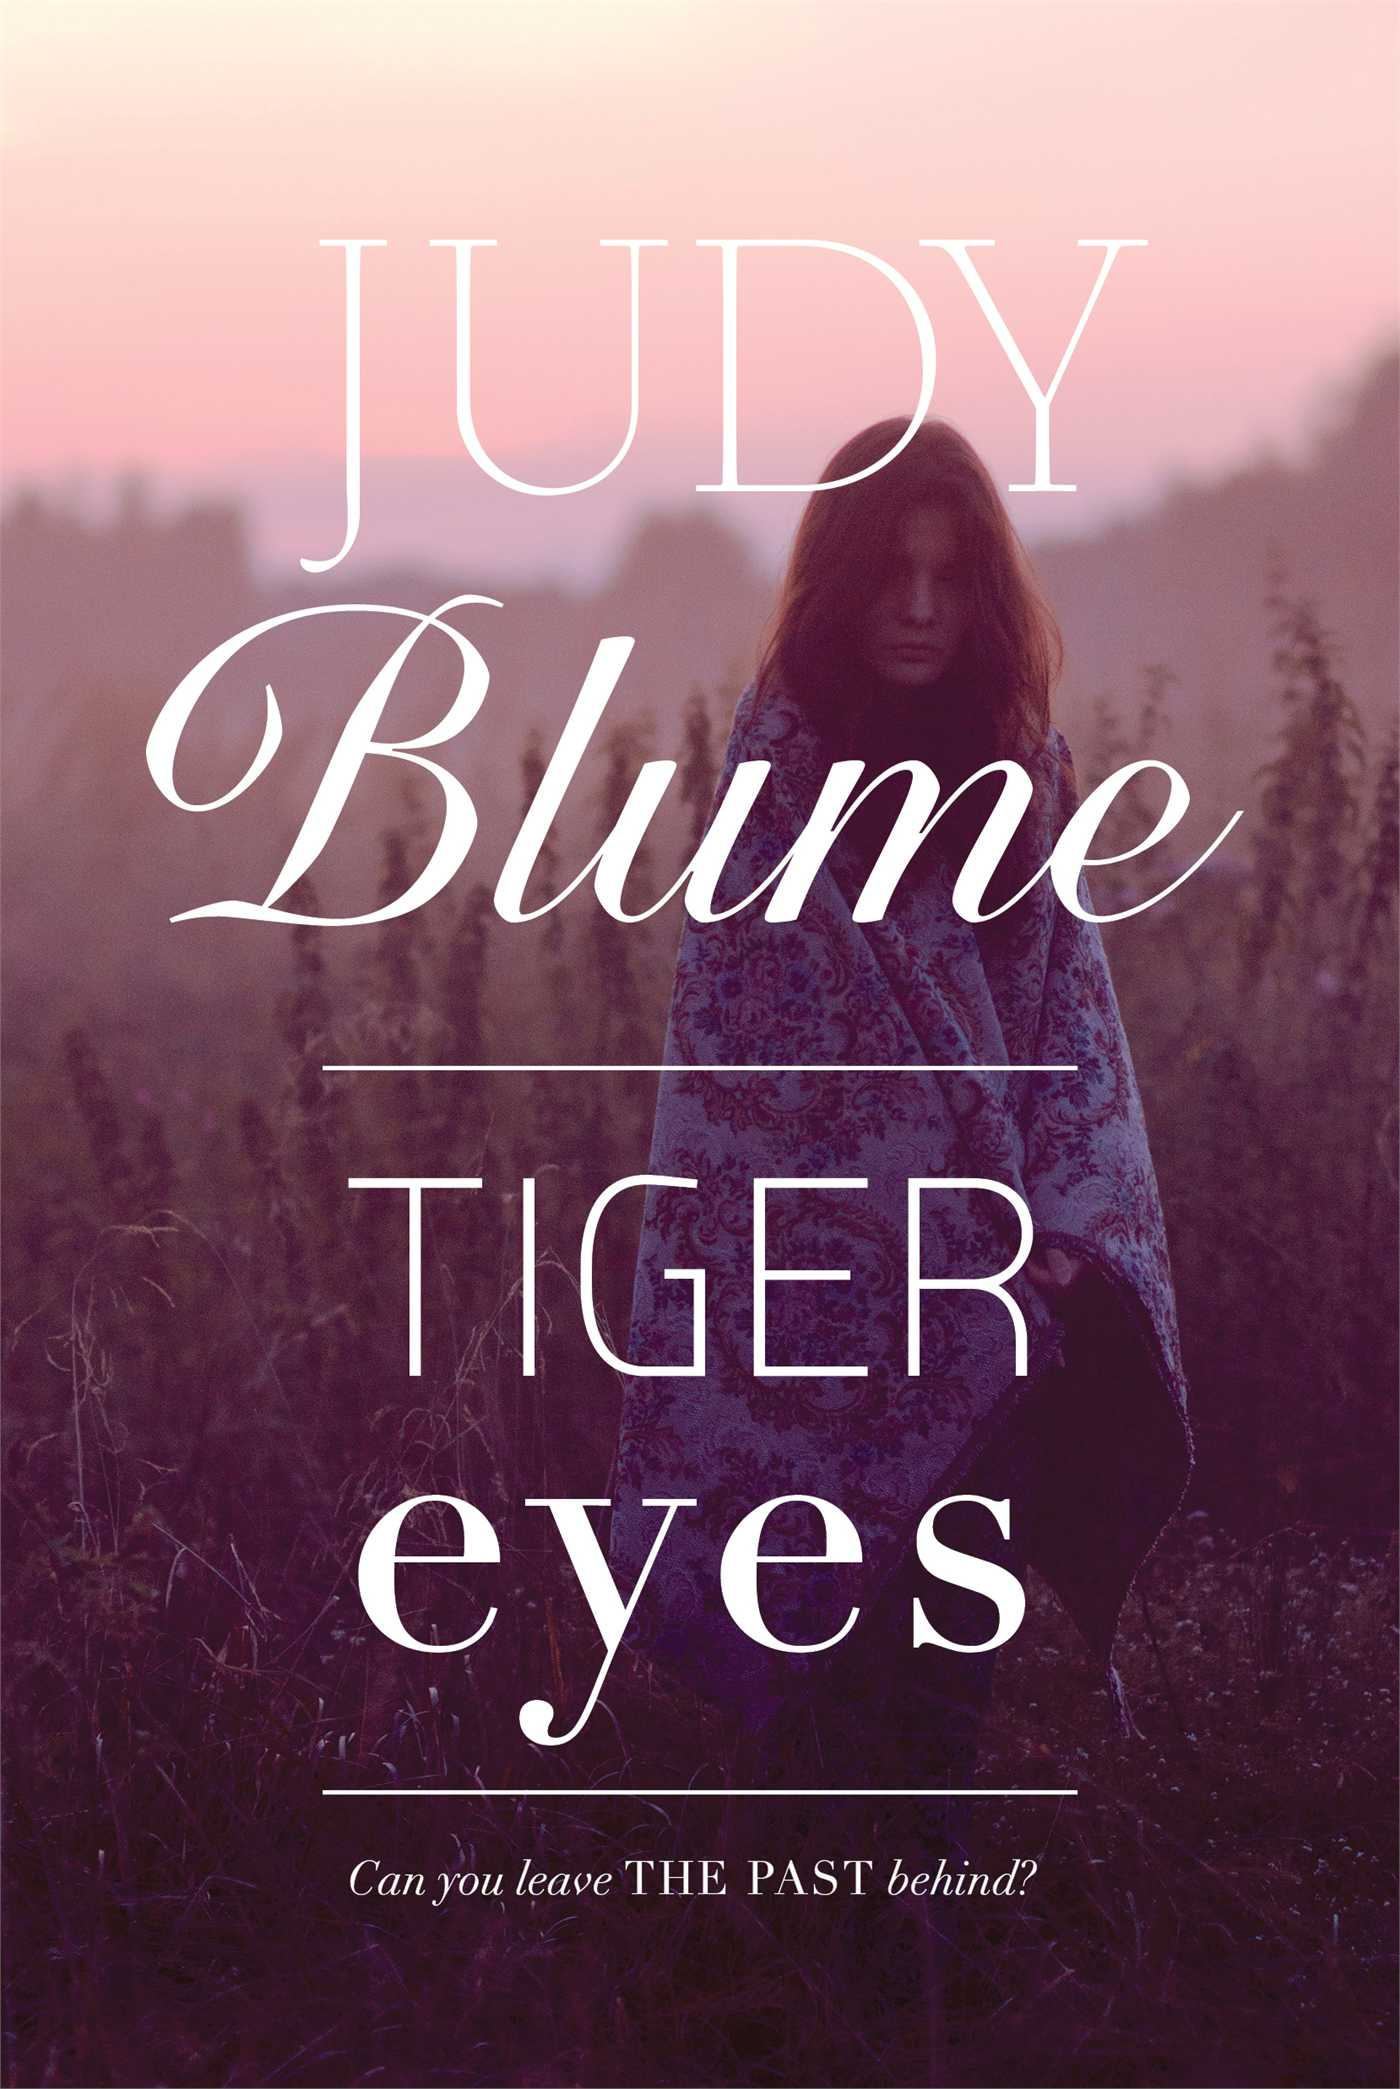 Tiger Eyes | Book by Judy Blume | Official Publisher Page | Simon & Schuster